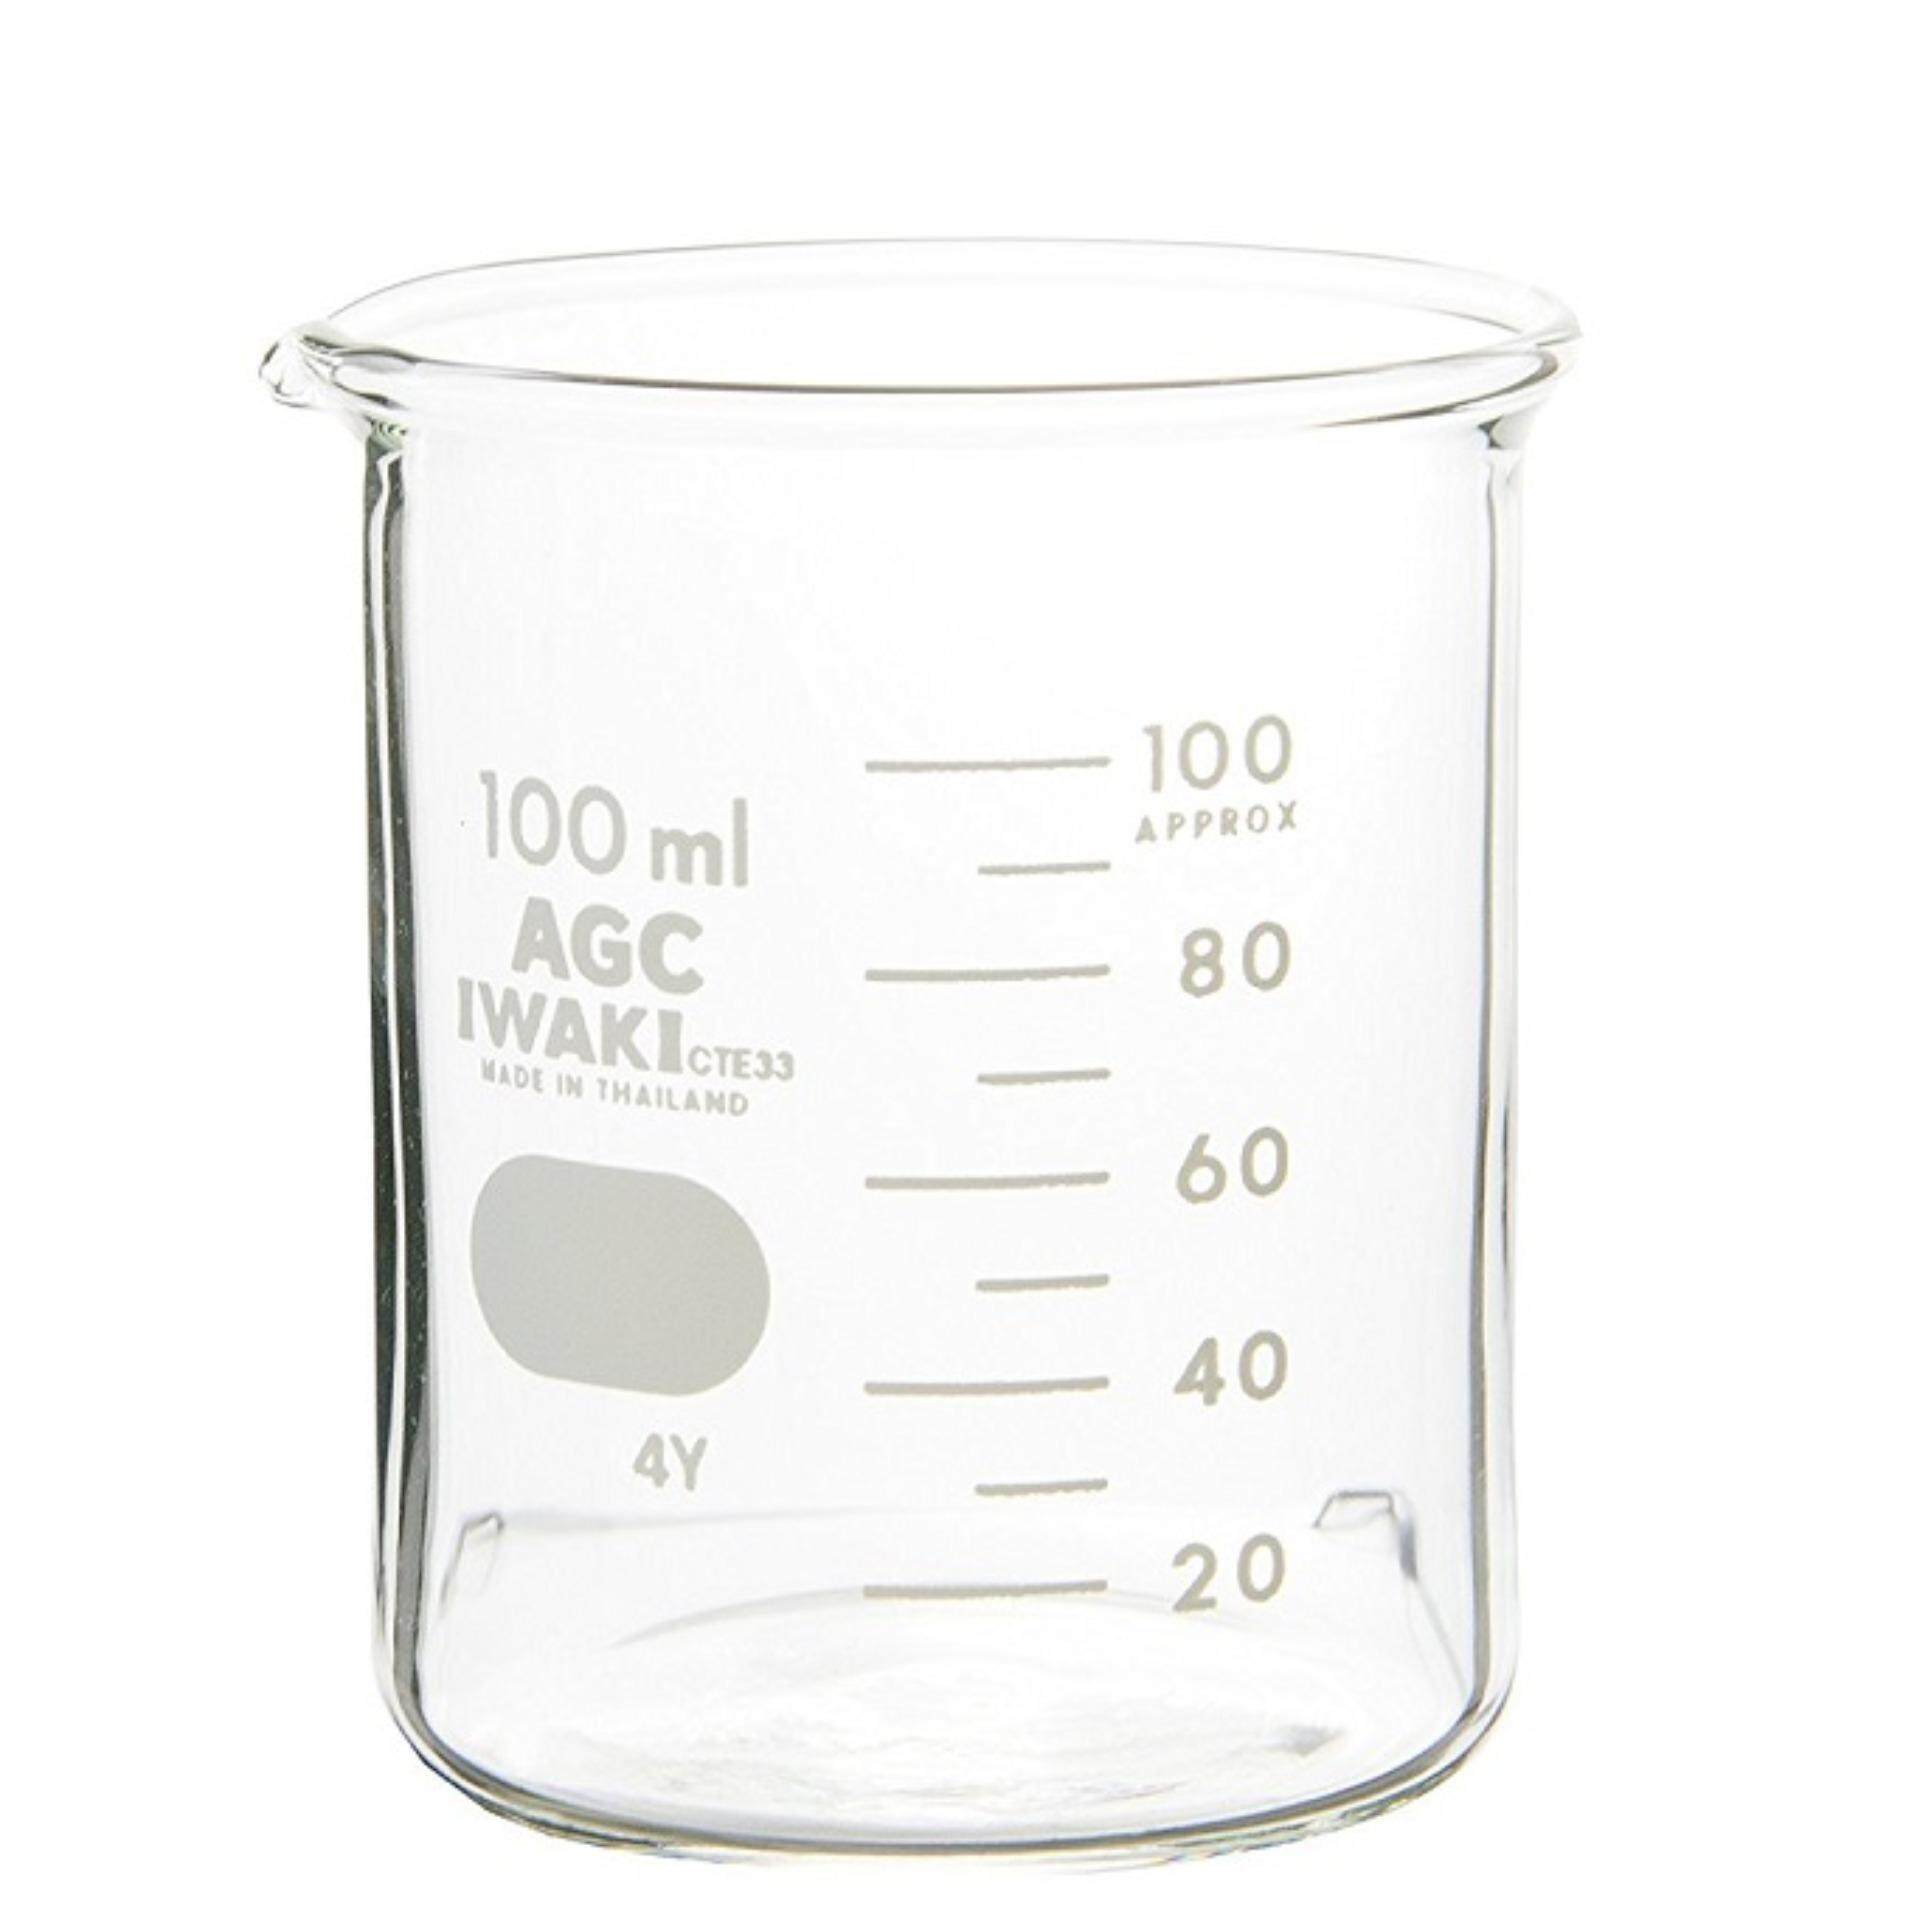 IWAKI Pyrex 100ml Glass Beaker Low Form Laboratory Use